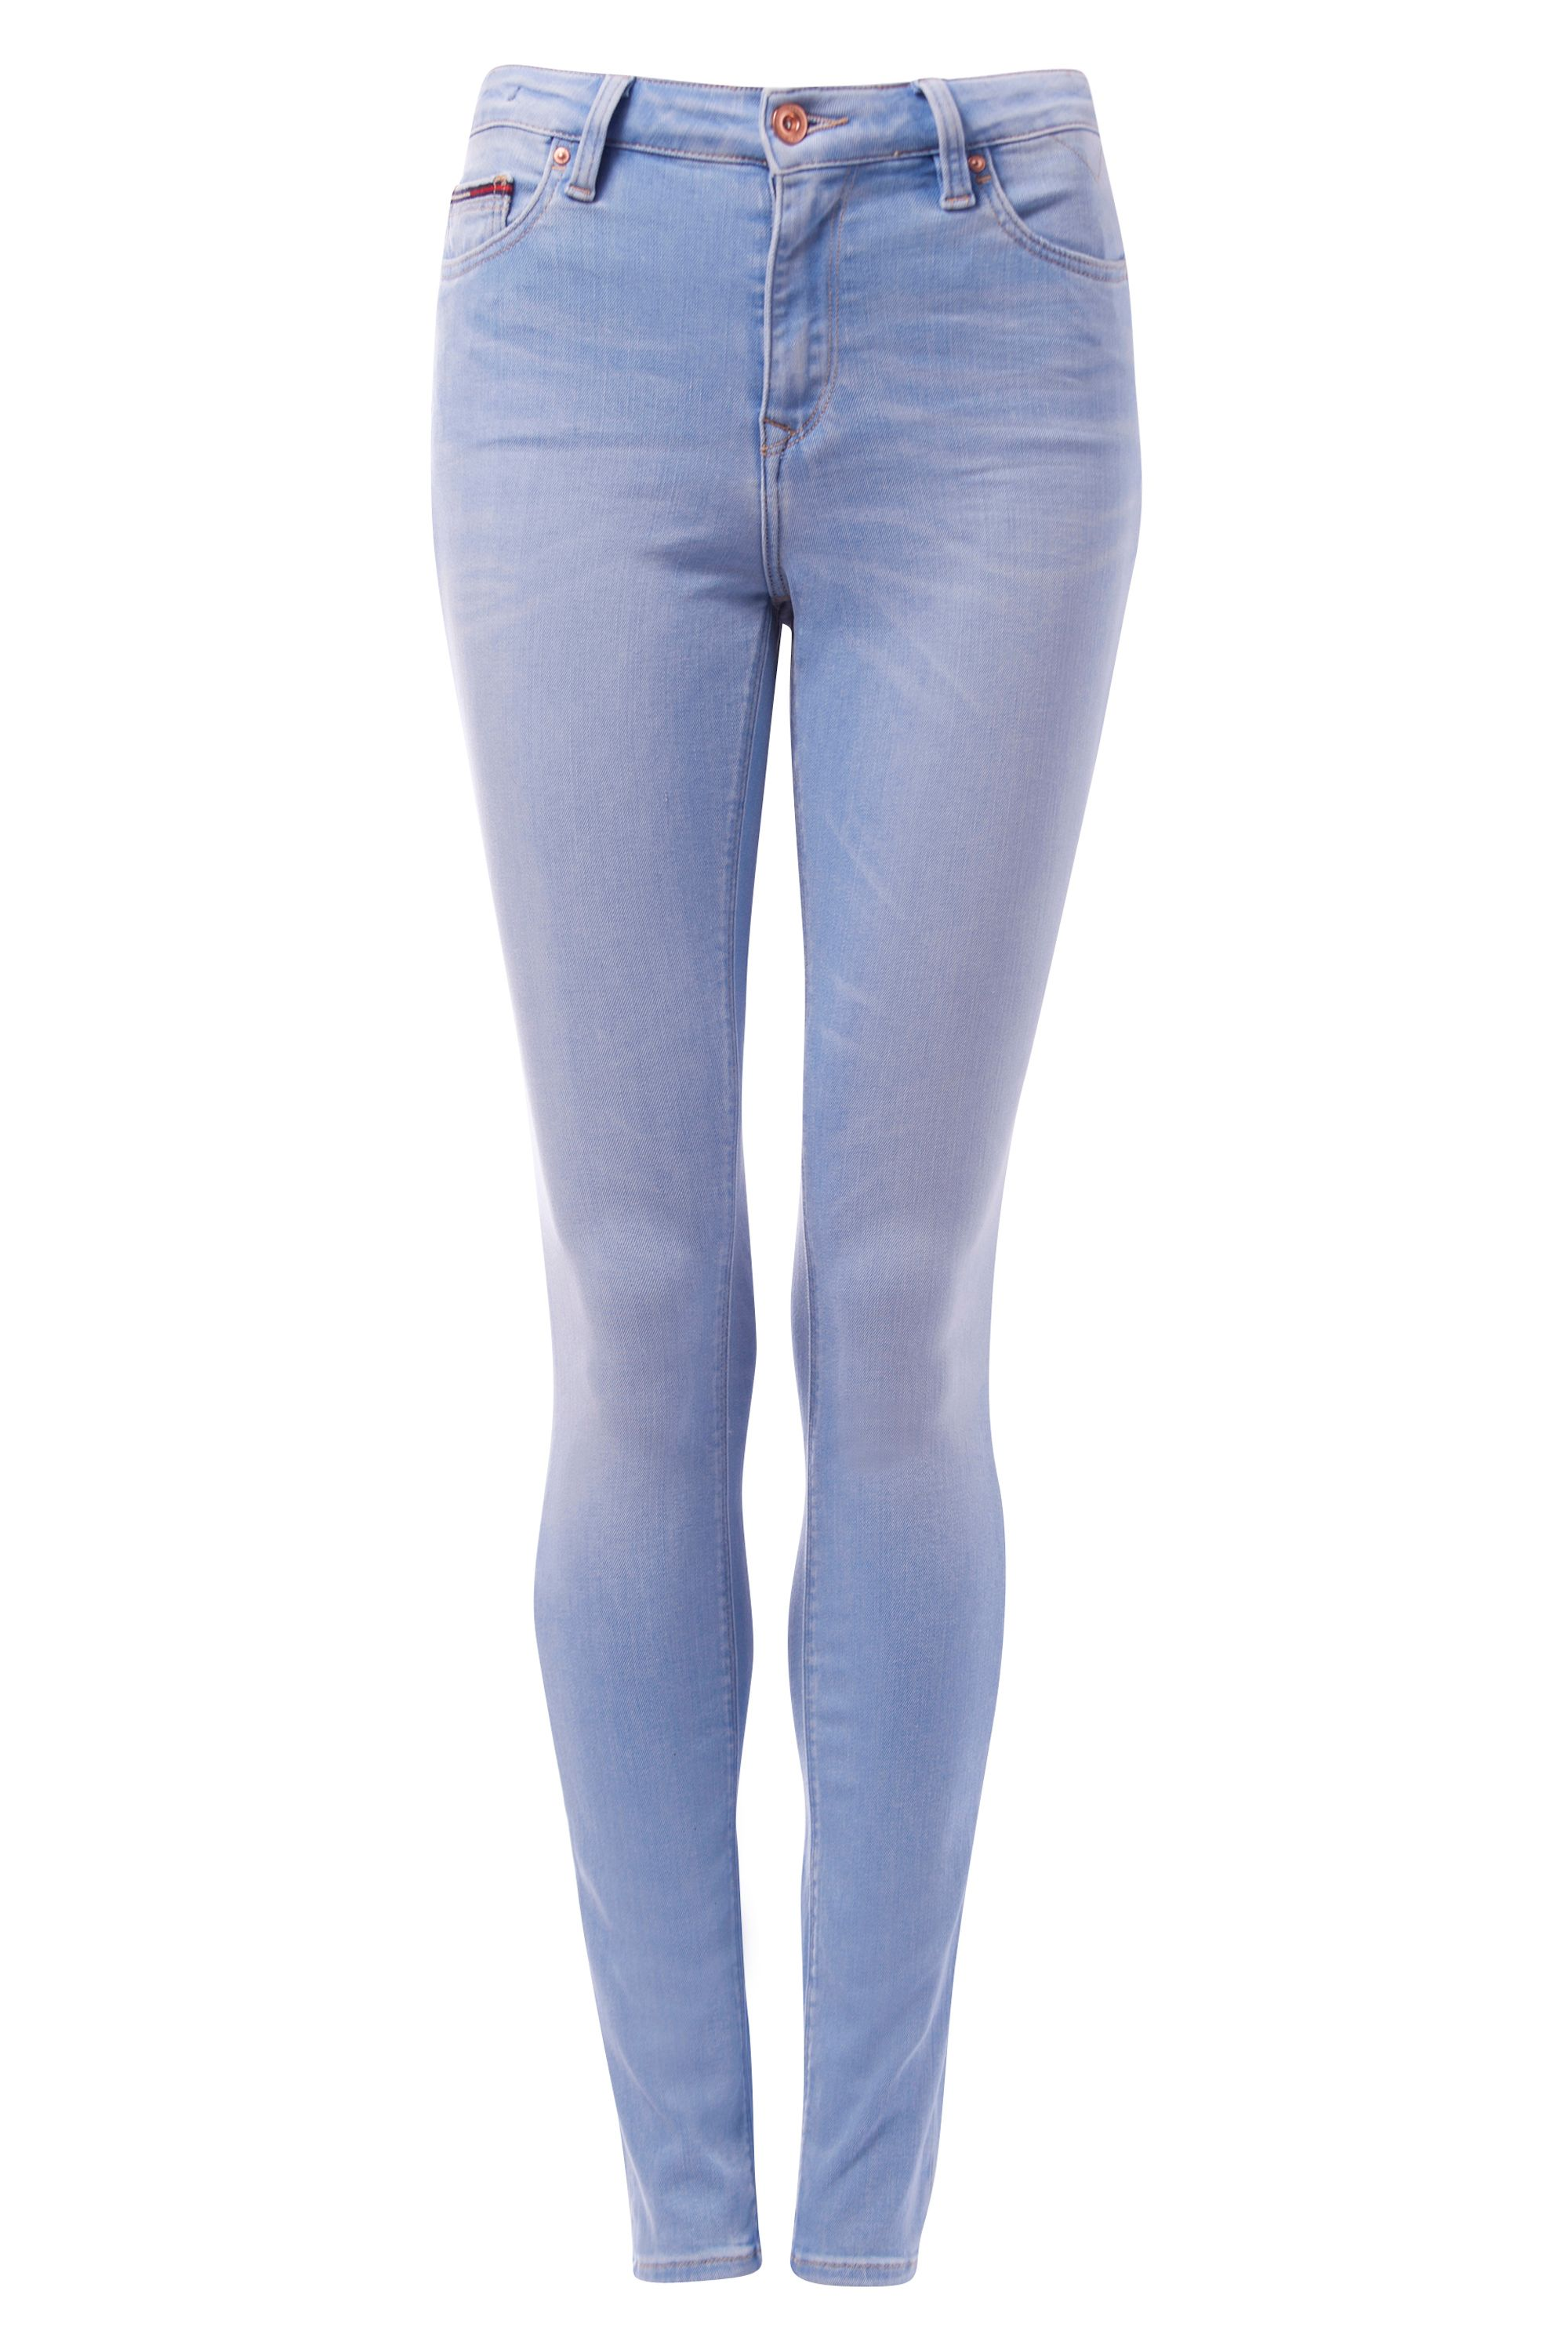 Tommy Hilfiger High Rise Skinny Santana Jeans Light Blue